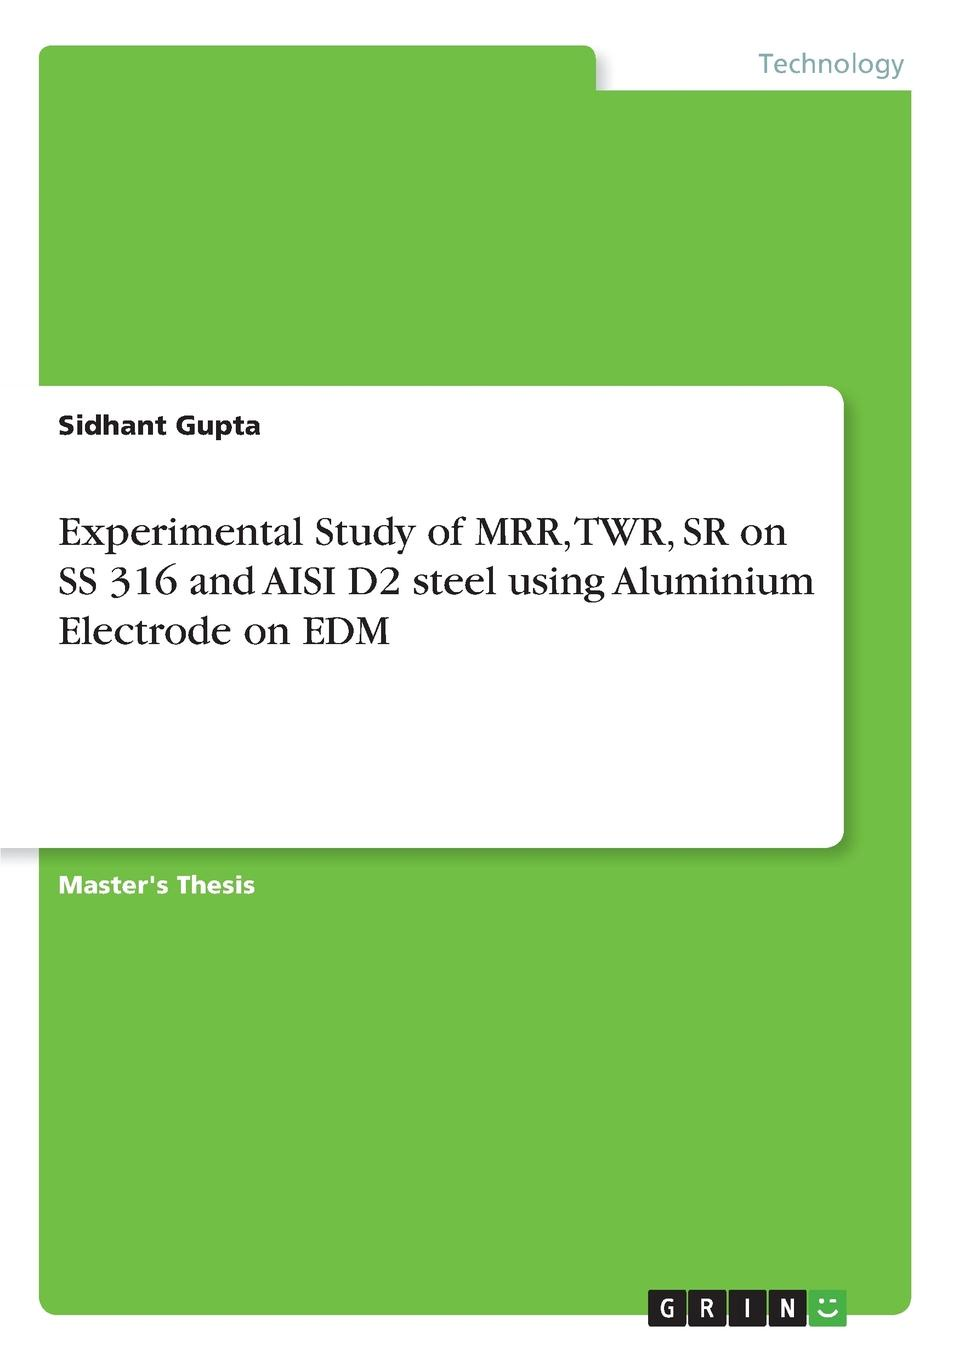 Sidhant Gupta Experimental Study of MRR, TWR, SR on SS 316 and AISI D2 steel using Aluminium Electrode on EDM experimental and simulation study for stress concentration factor